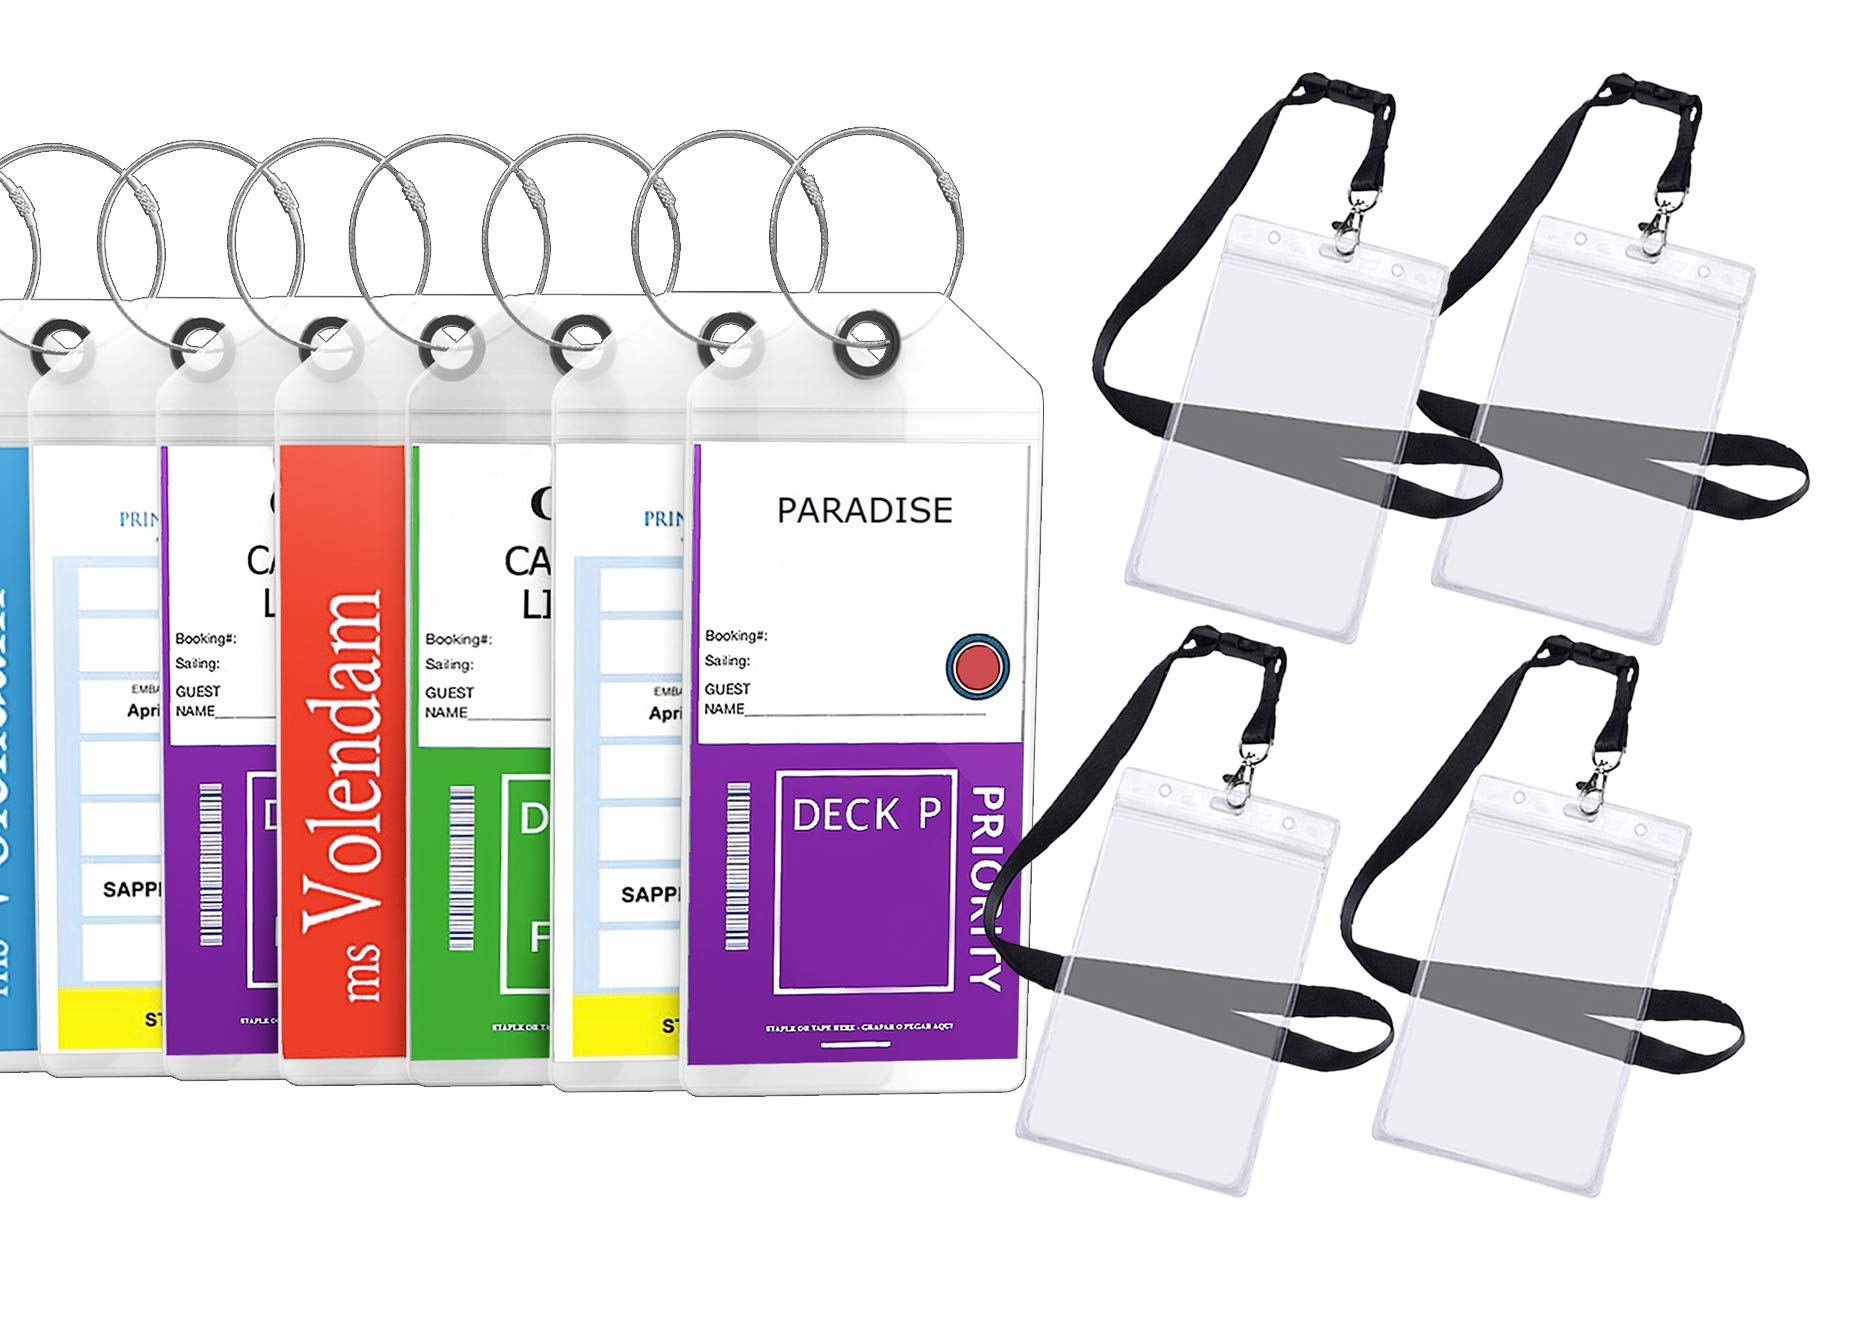 Cruise Luggage Tags Etag Holders Zip Seal & Steel Loops Thick PVC - (8 Pack + 4 ID Holders) by Highwind